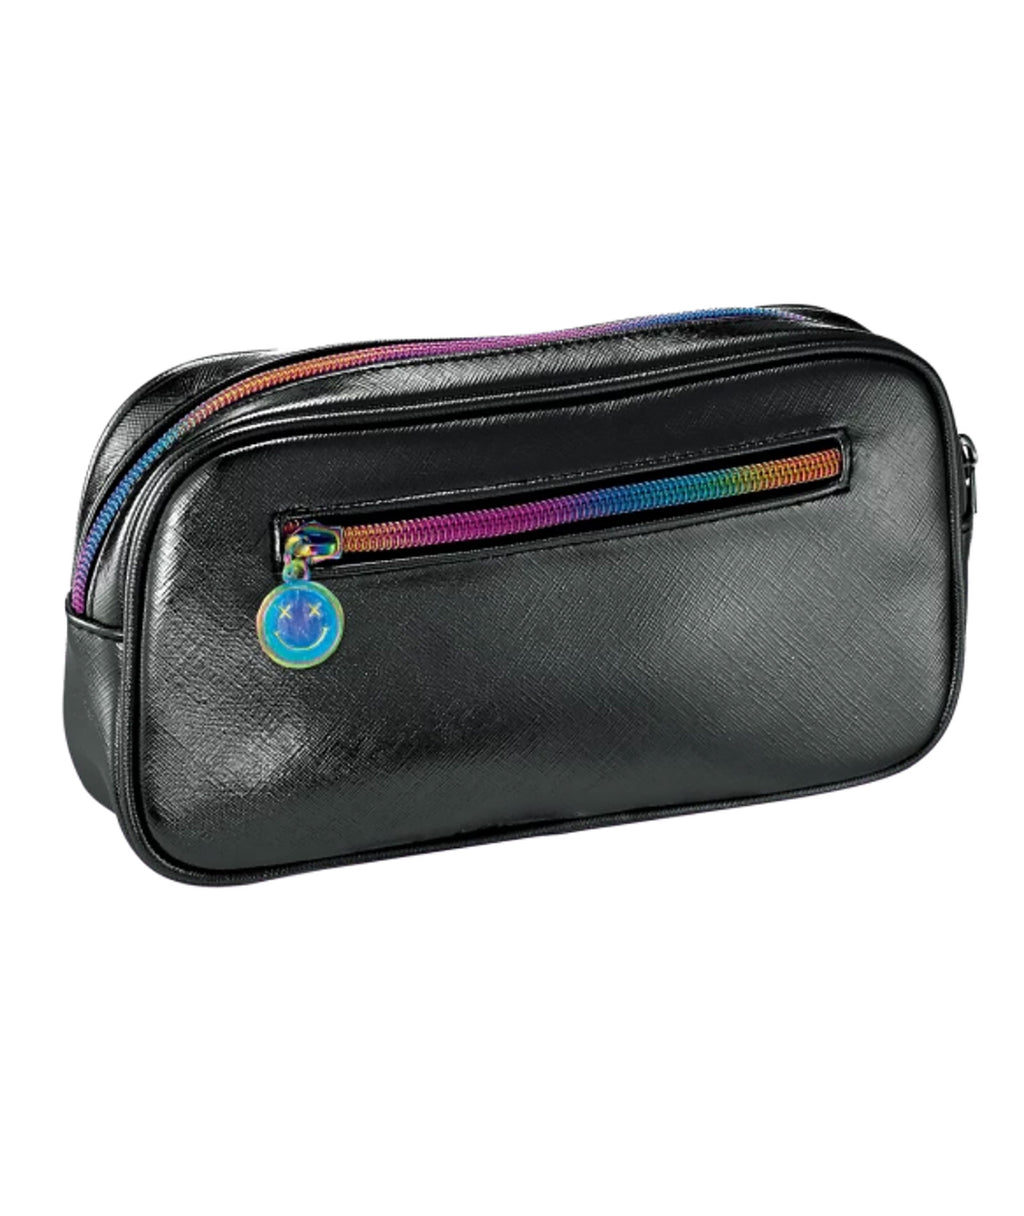 iScream Small Cosmetic Bag Black